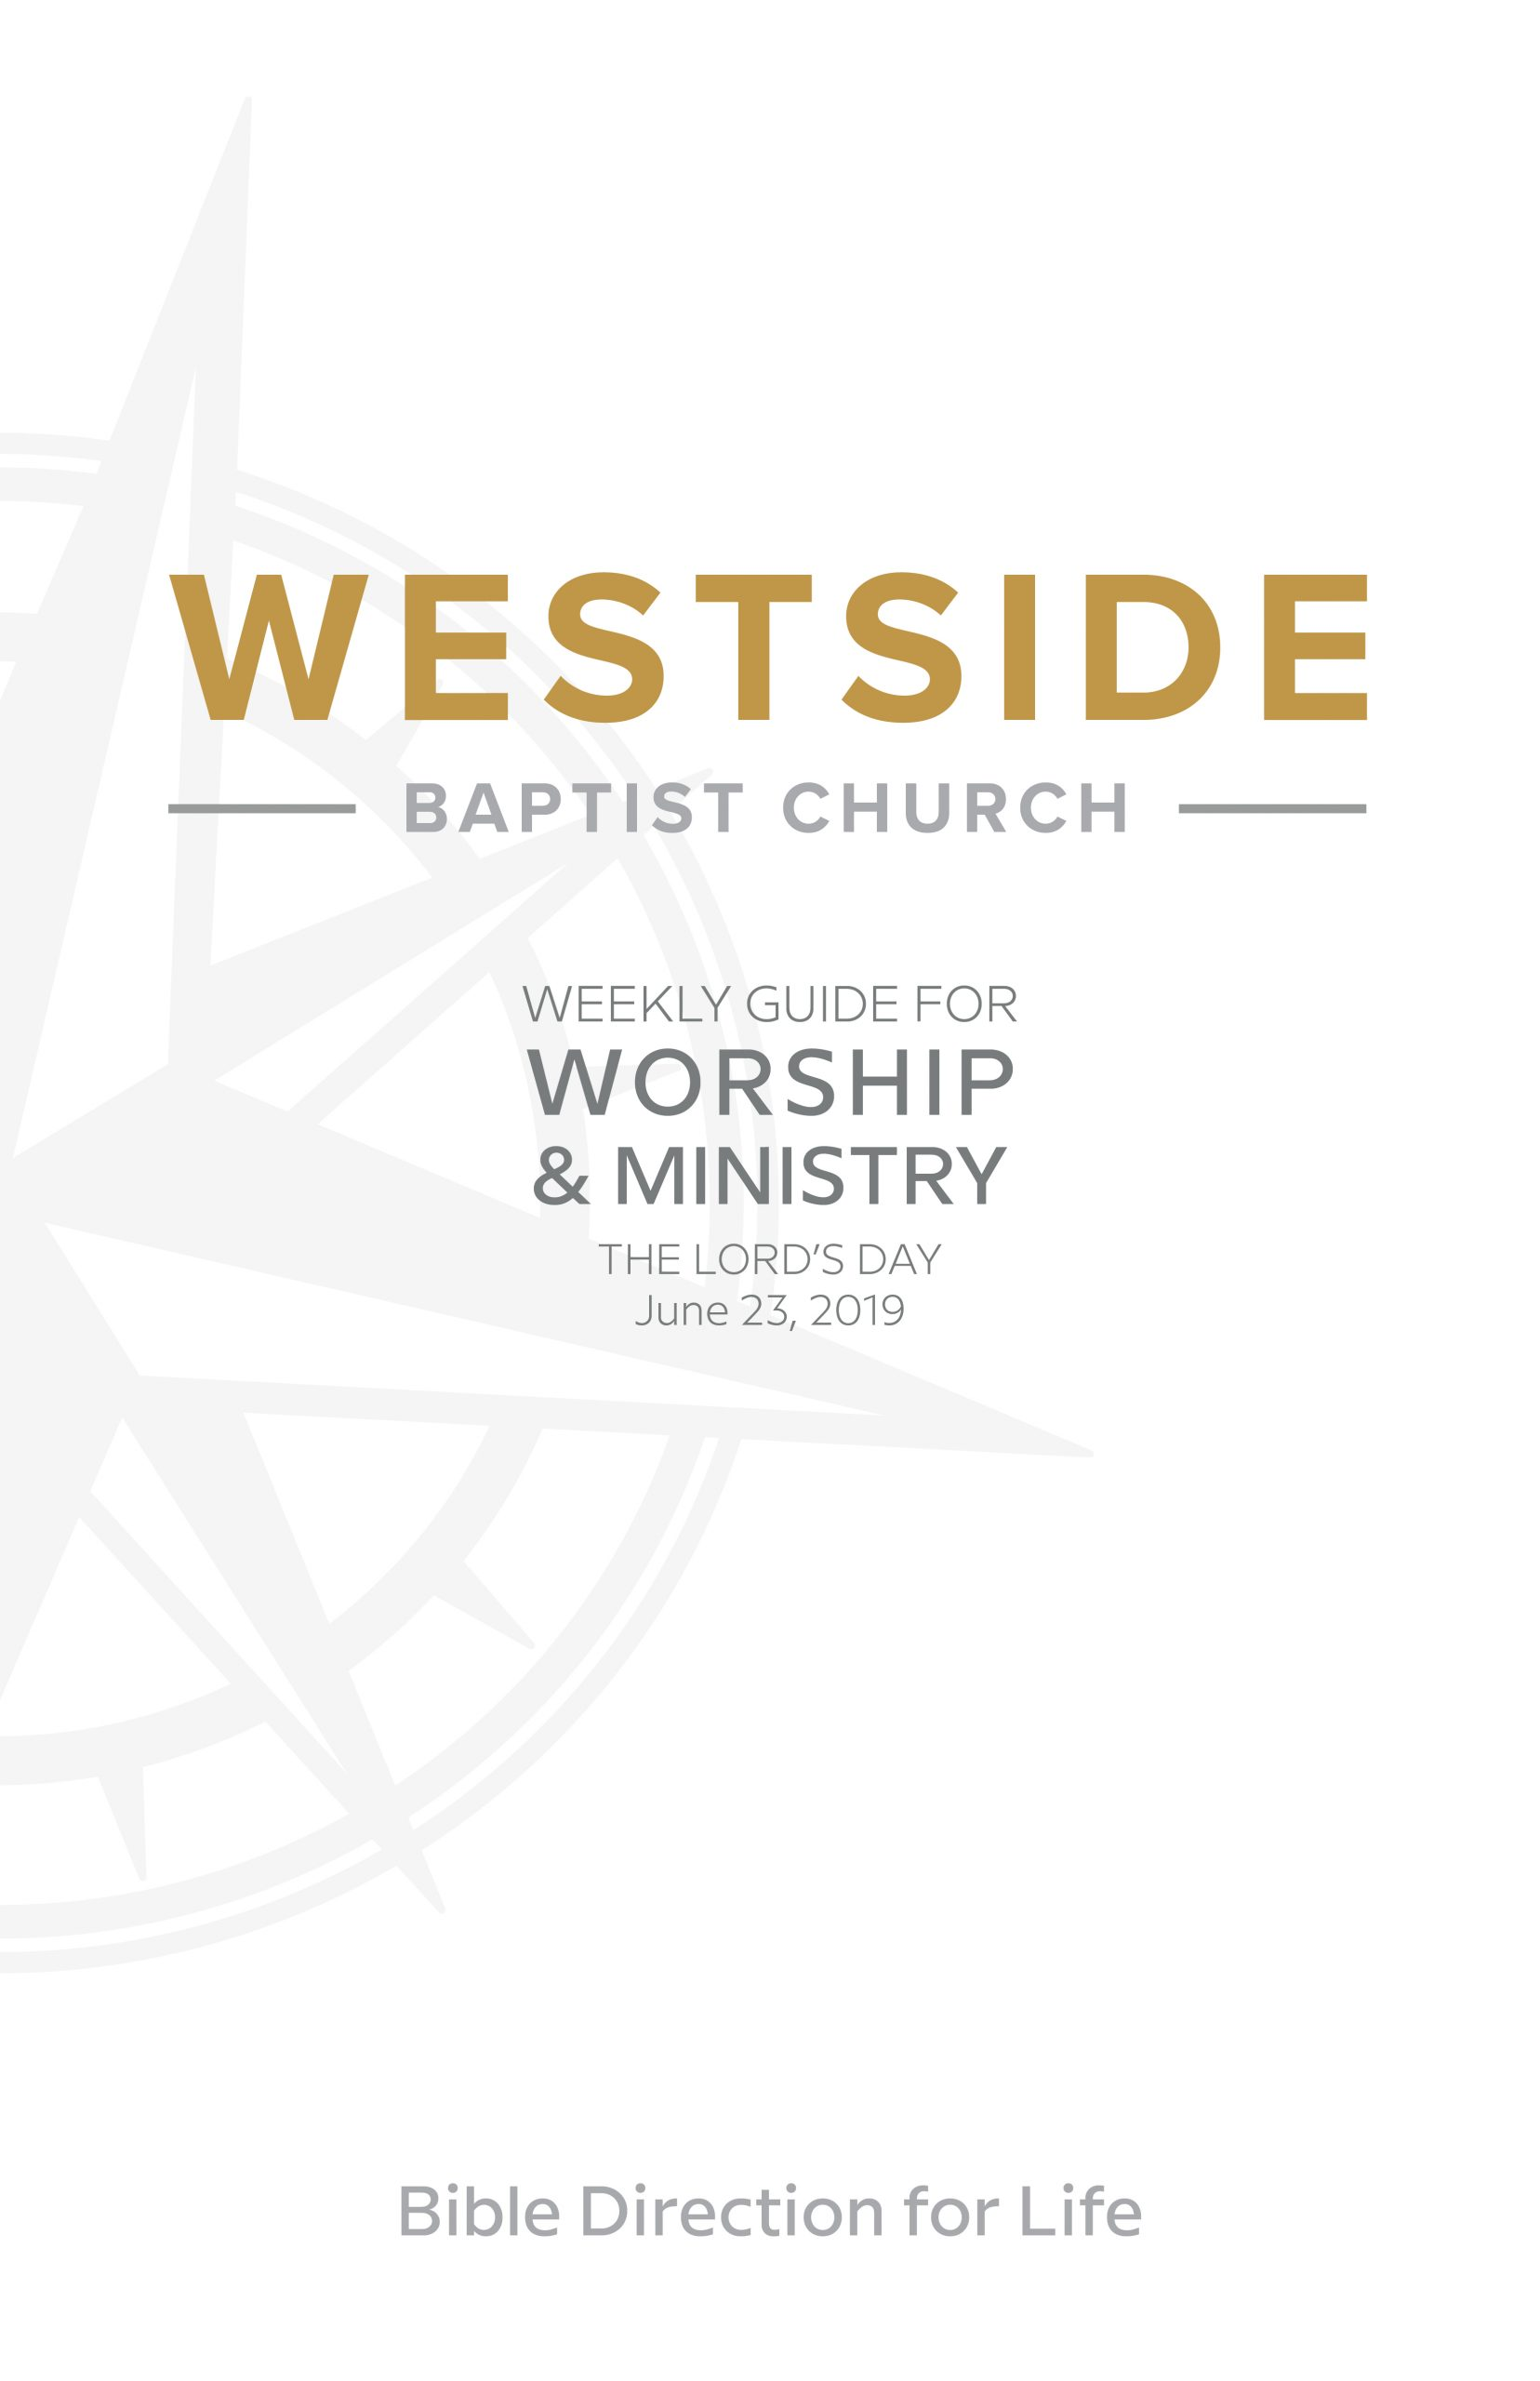 Weekly Guide for Worship and Ministry—June 23